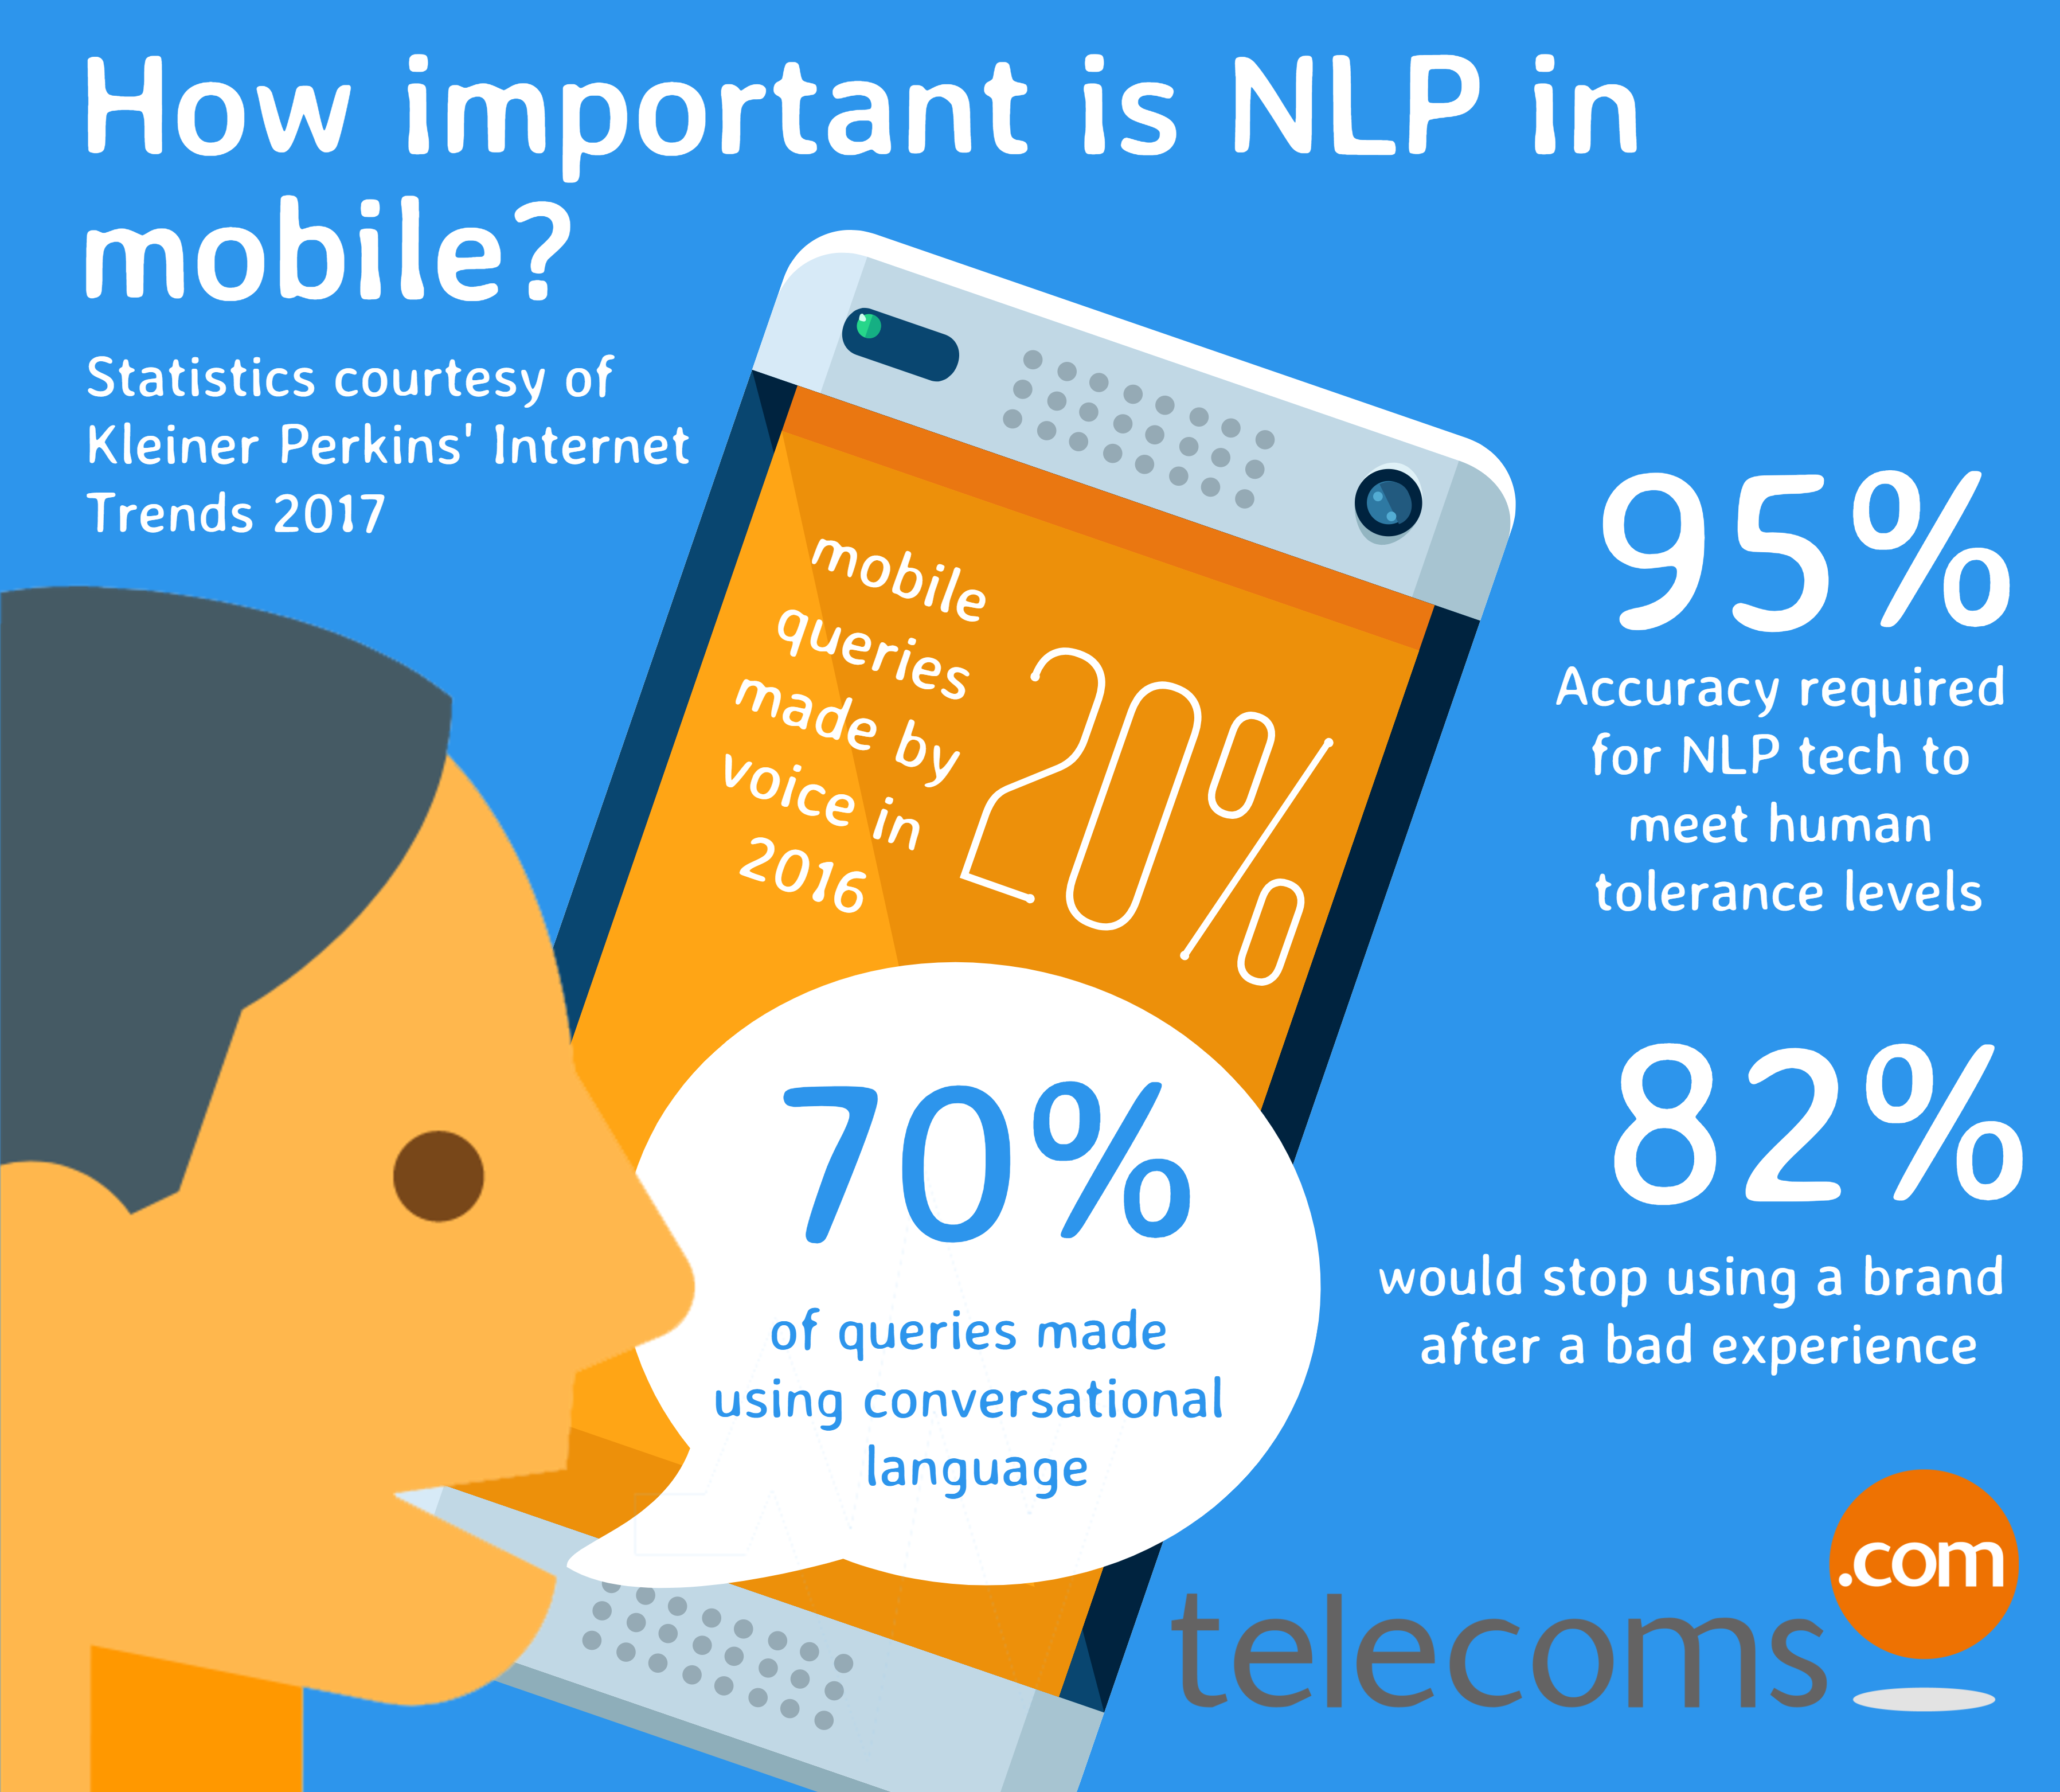 NLP in mobile